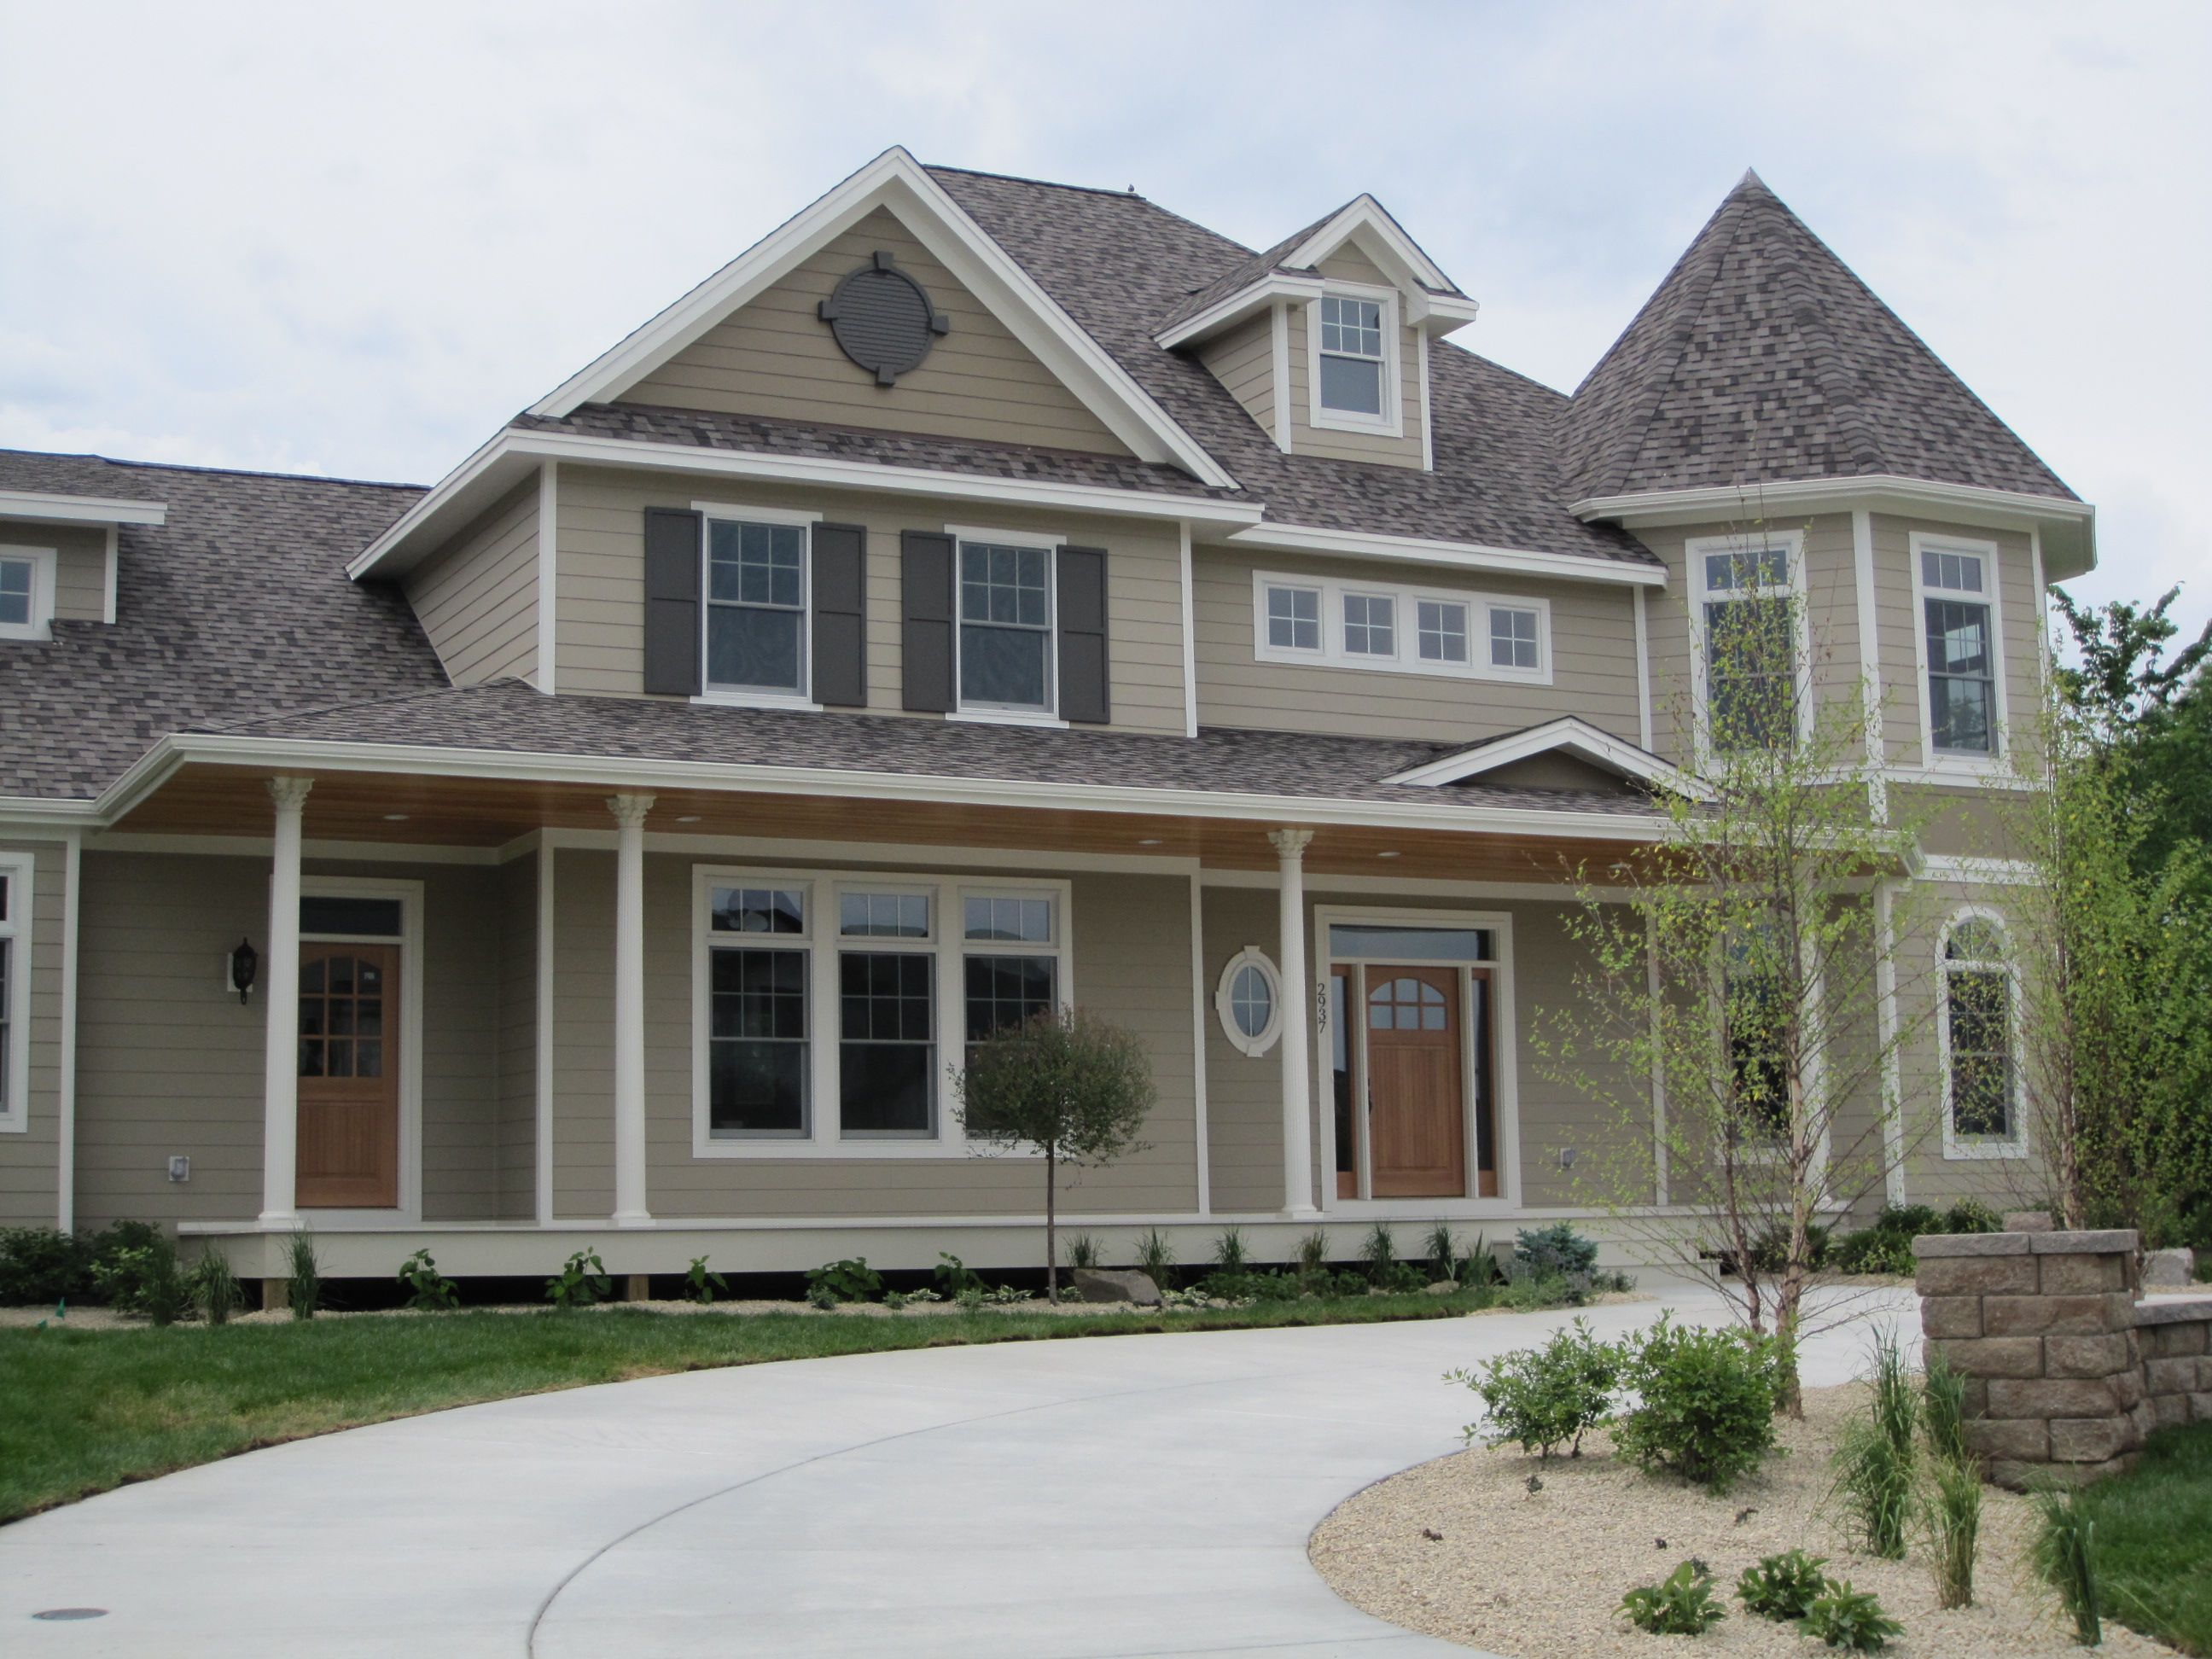 Amazing 17 Best Images About Lowes Exterior Color On Pinterest Exterior Largest Home Design Picture Inspirations Pitcheantrous